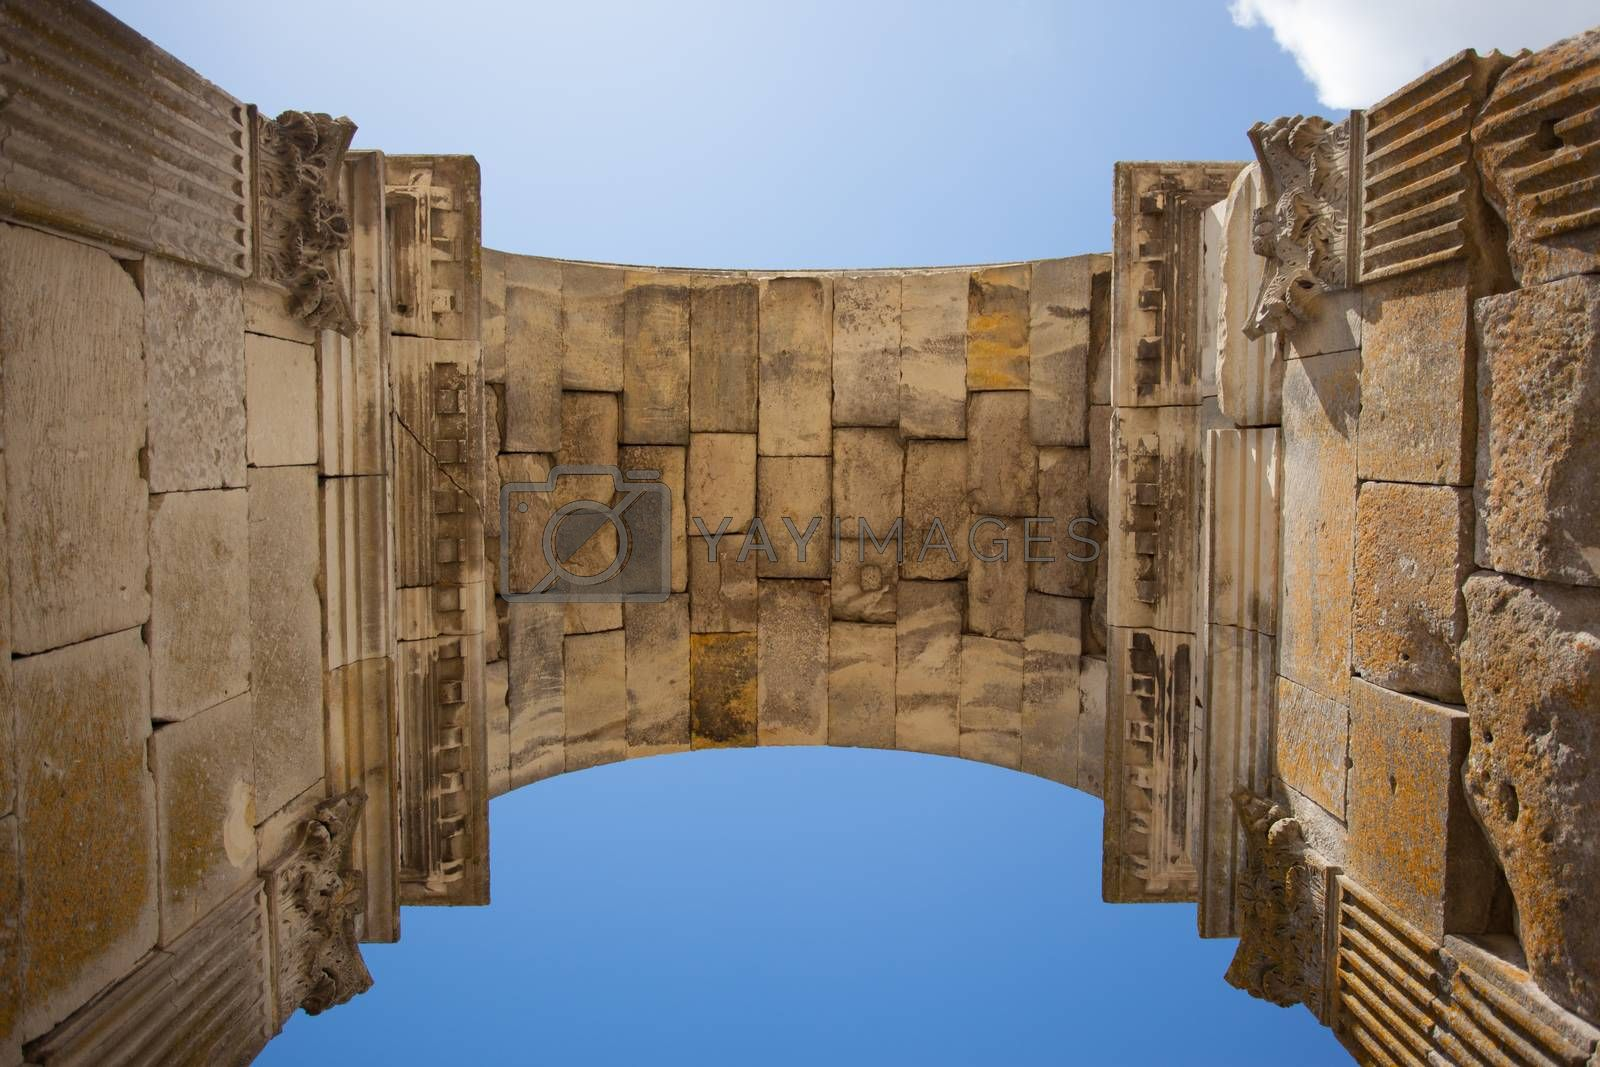 Inside view of the Germanicus roman arch of the ville of Saintes in french charente maritime region